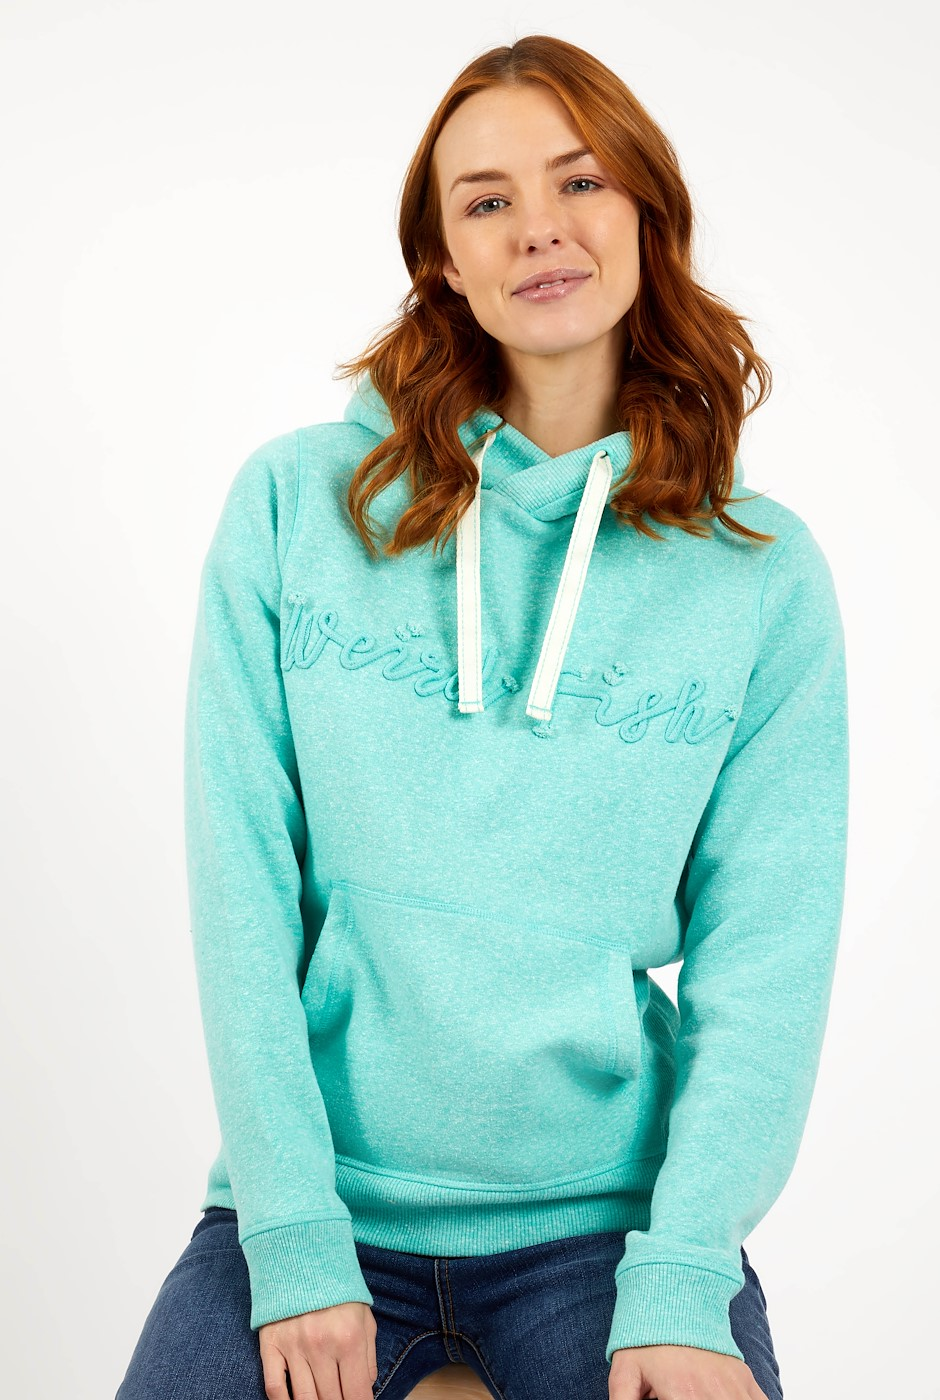 Bodhi Branded Snow Marl Hoodie Light Teal